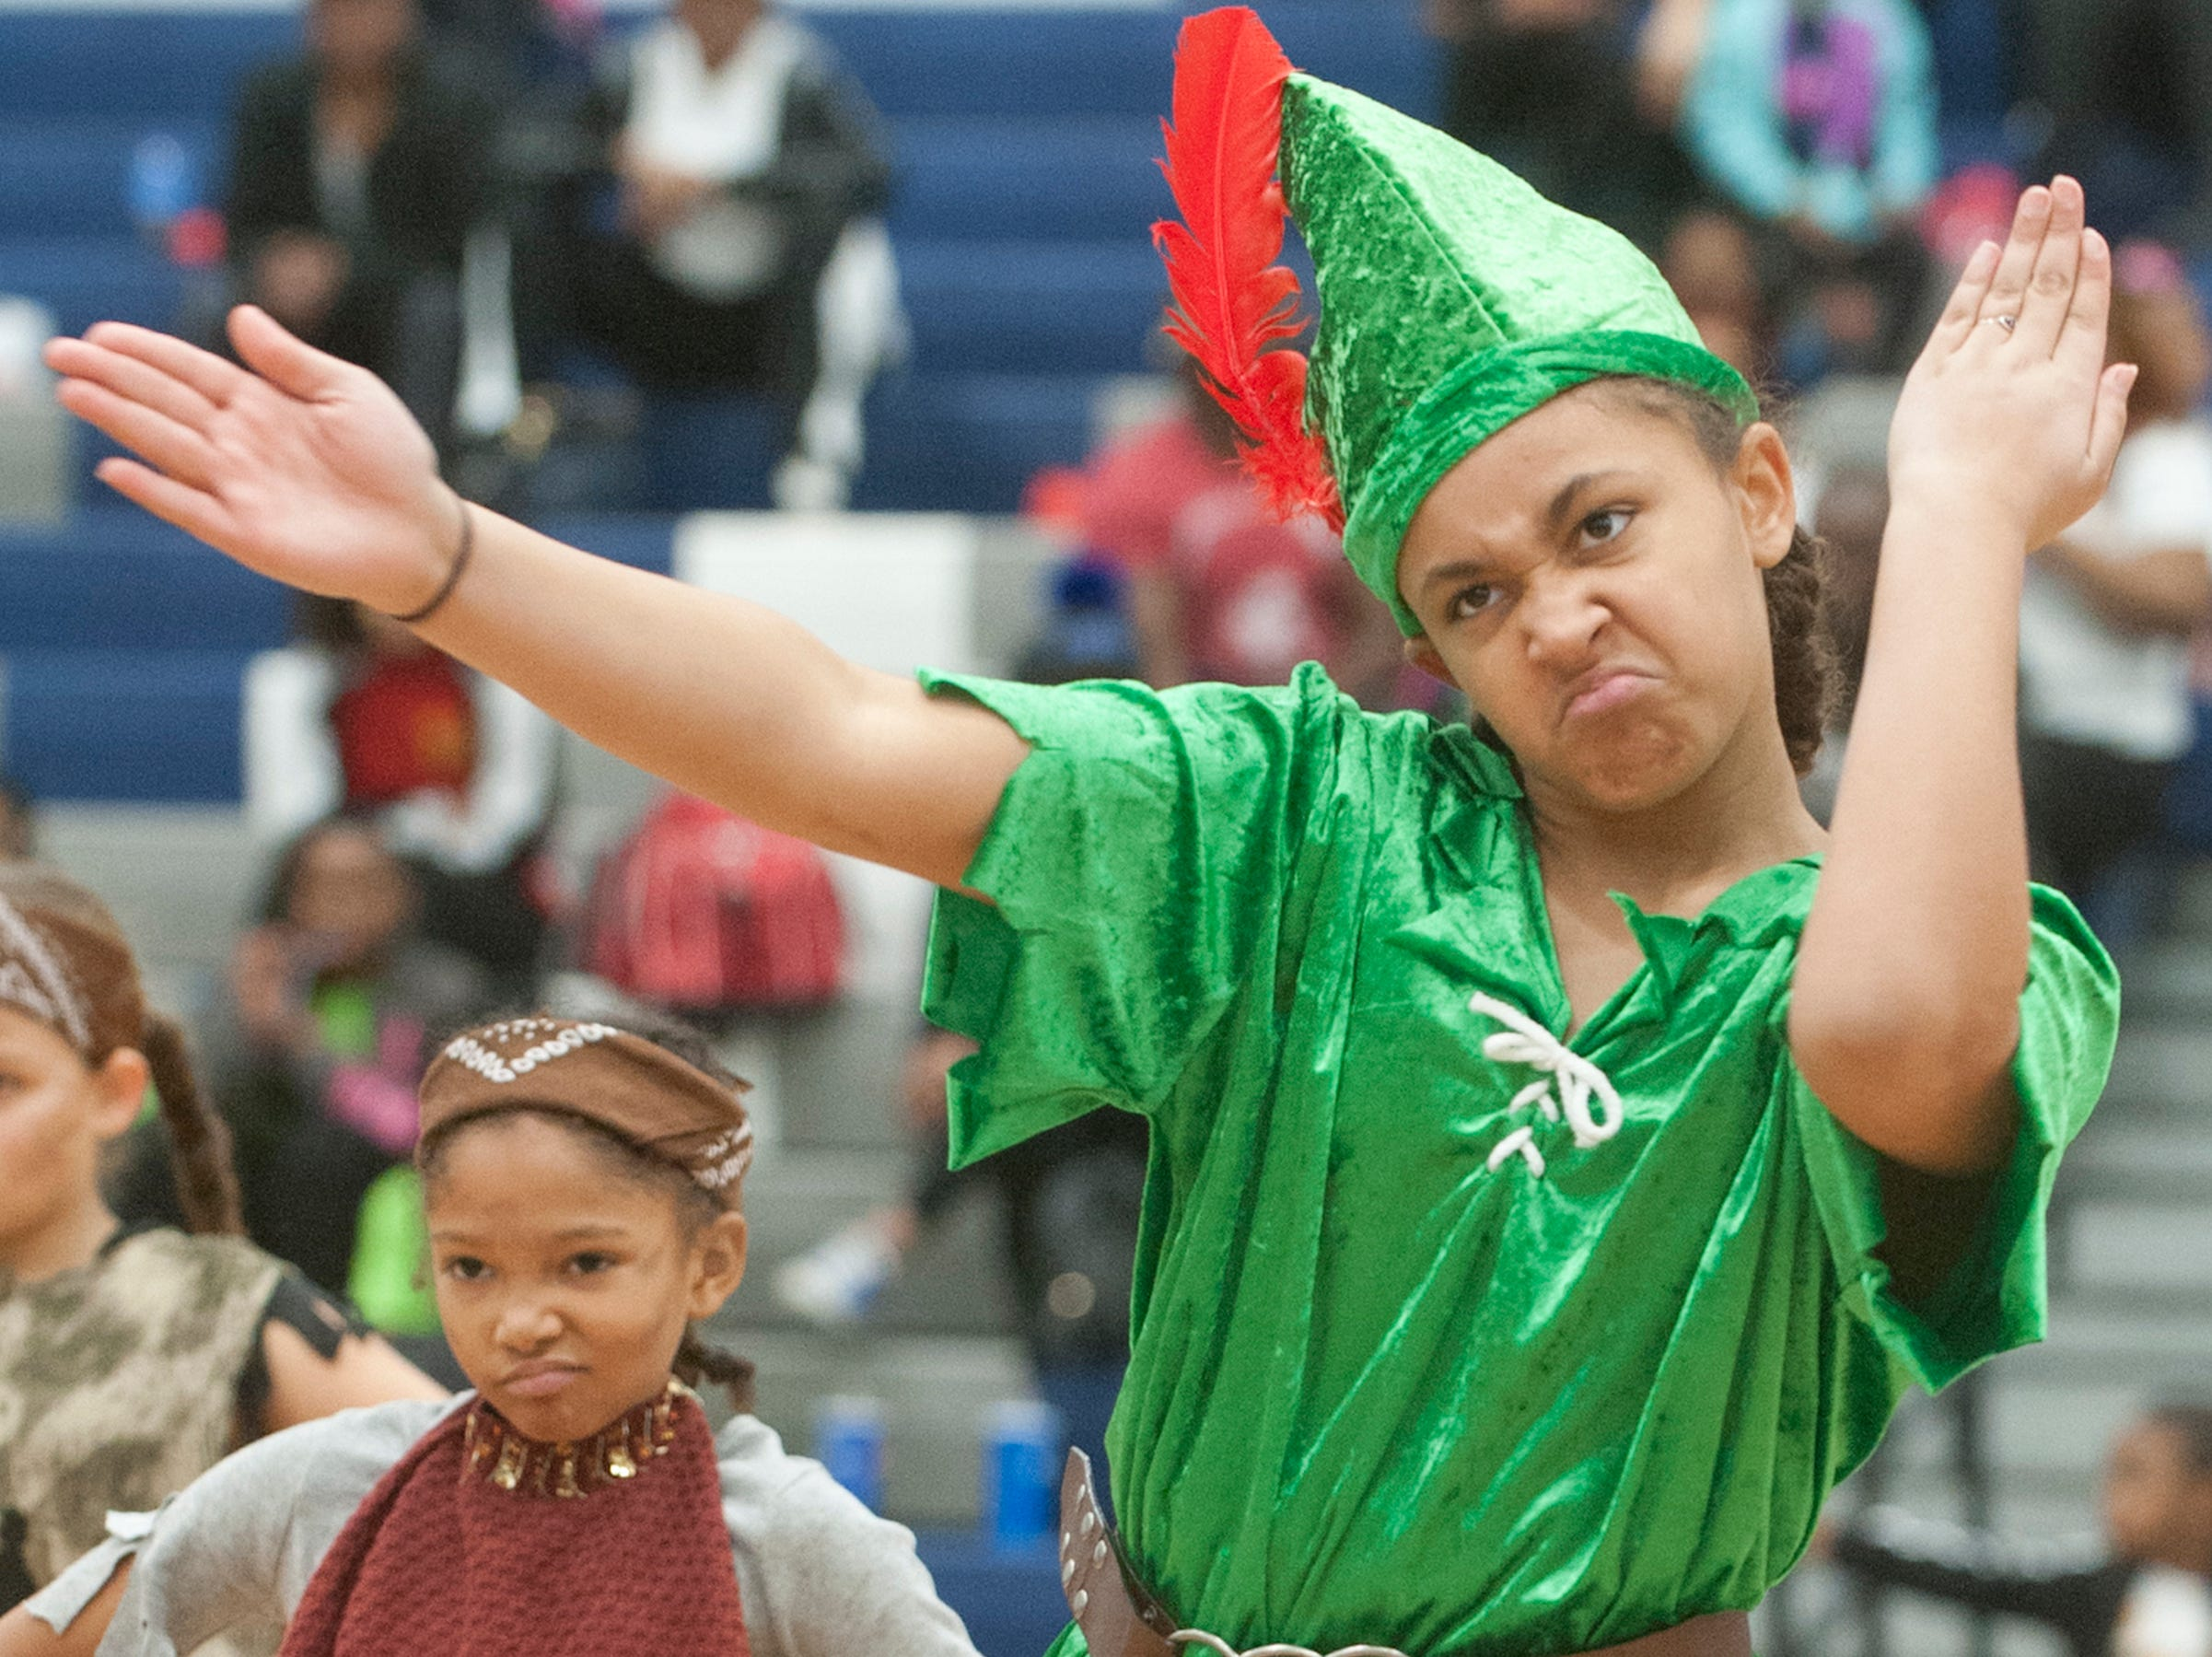 Semple Elementary 5th grader Jaylin Jackson, as Peter Pan, performs at StepFest, a Kentucky Derby Festival event sponsored by Louisville Parks and Recreation and held at Moore Traditional High School. The team took 1st place in the elementary school category.